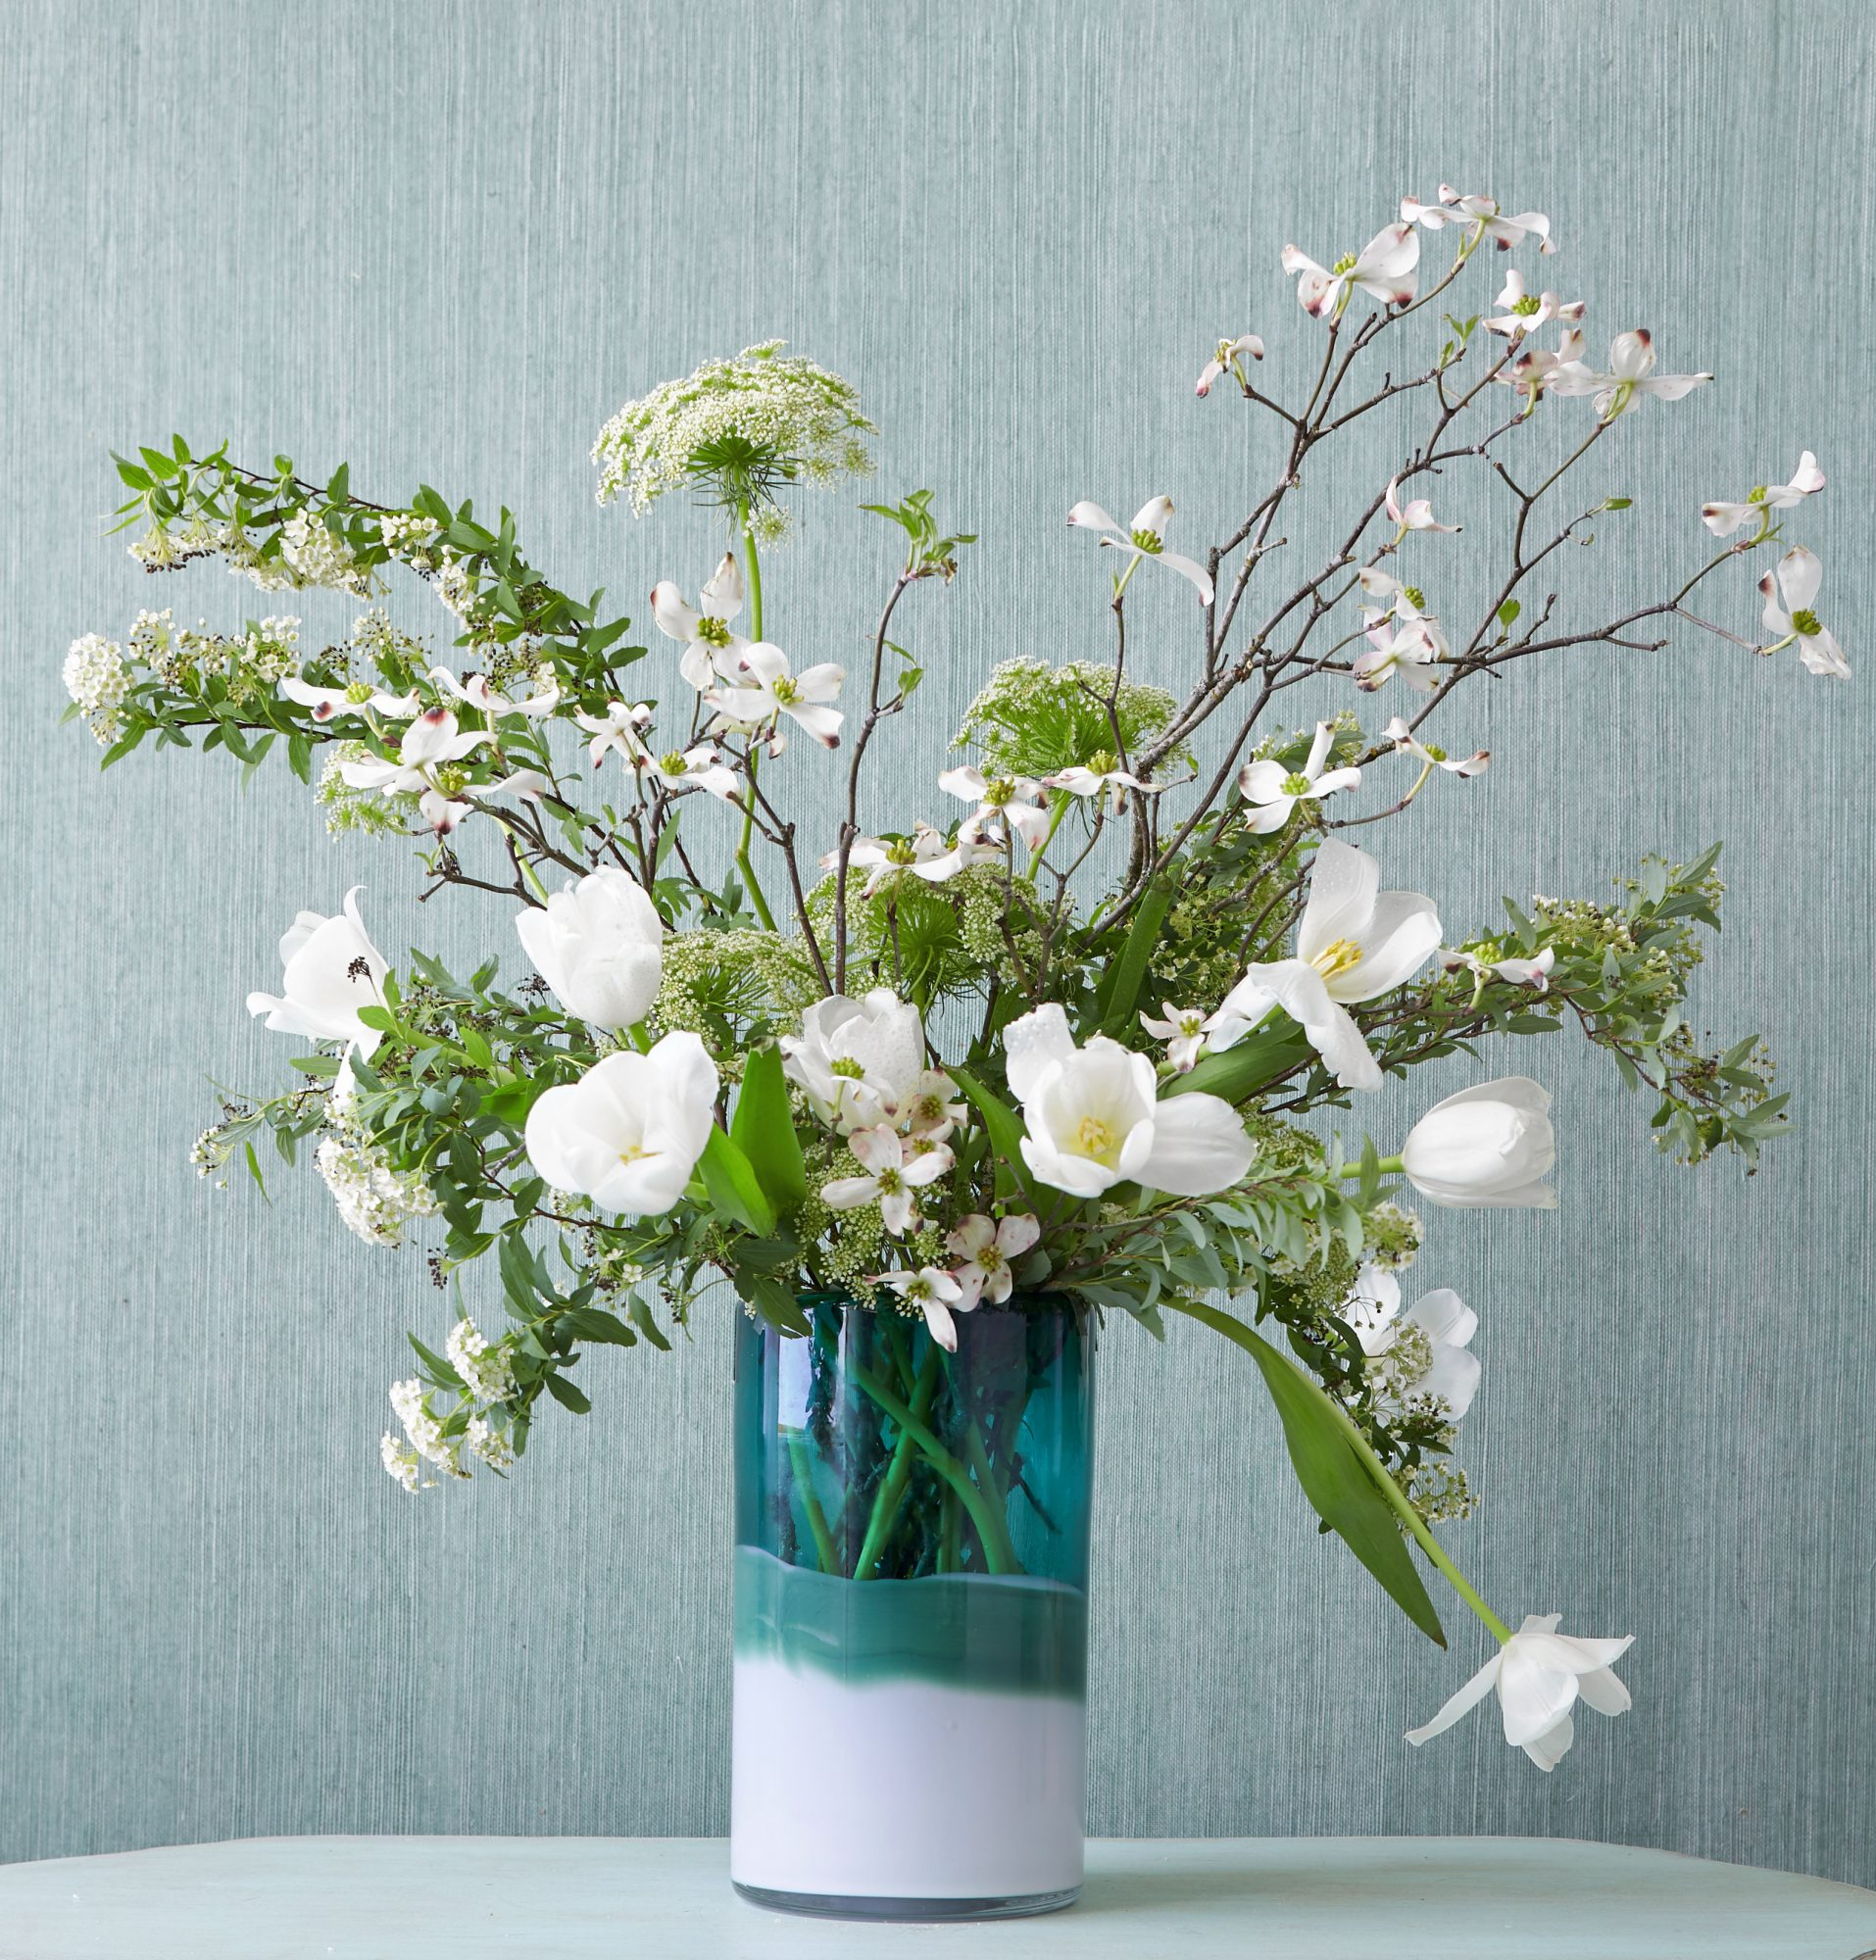 White Dogwood and Queen Anne's Lace Flower Arrangements